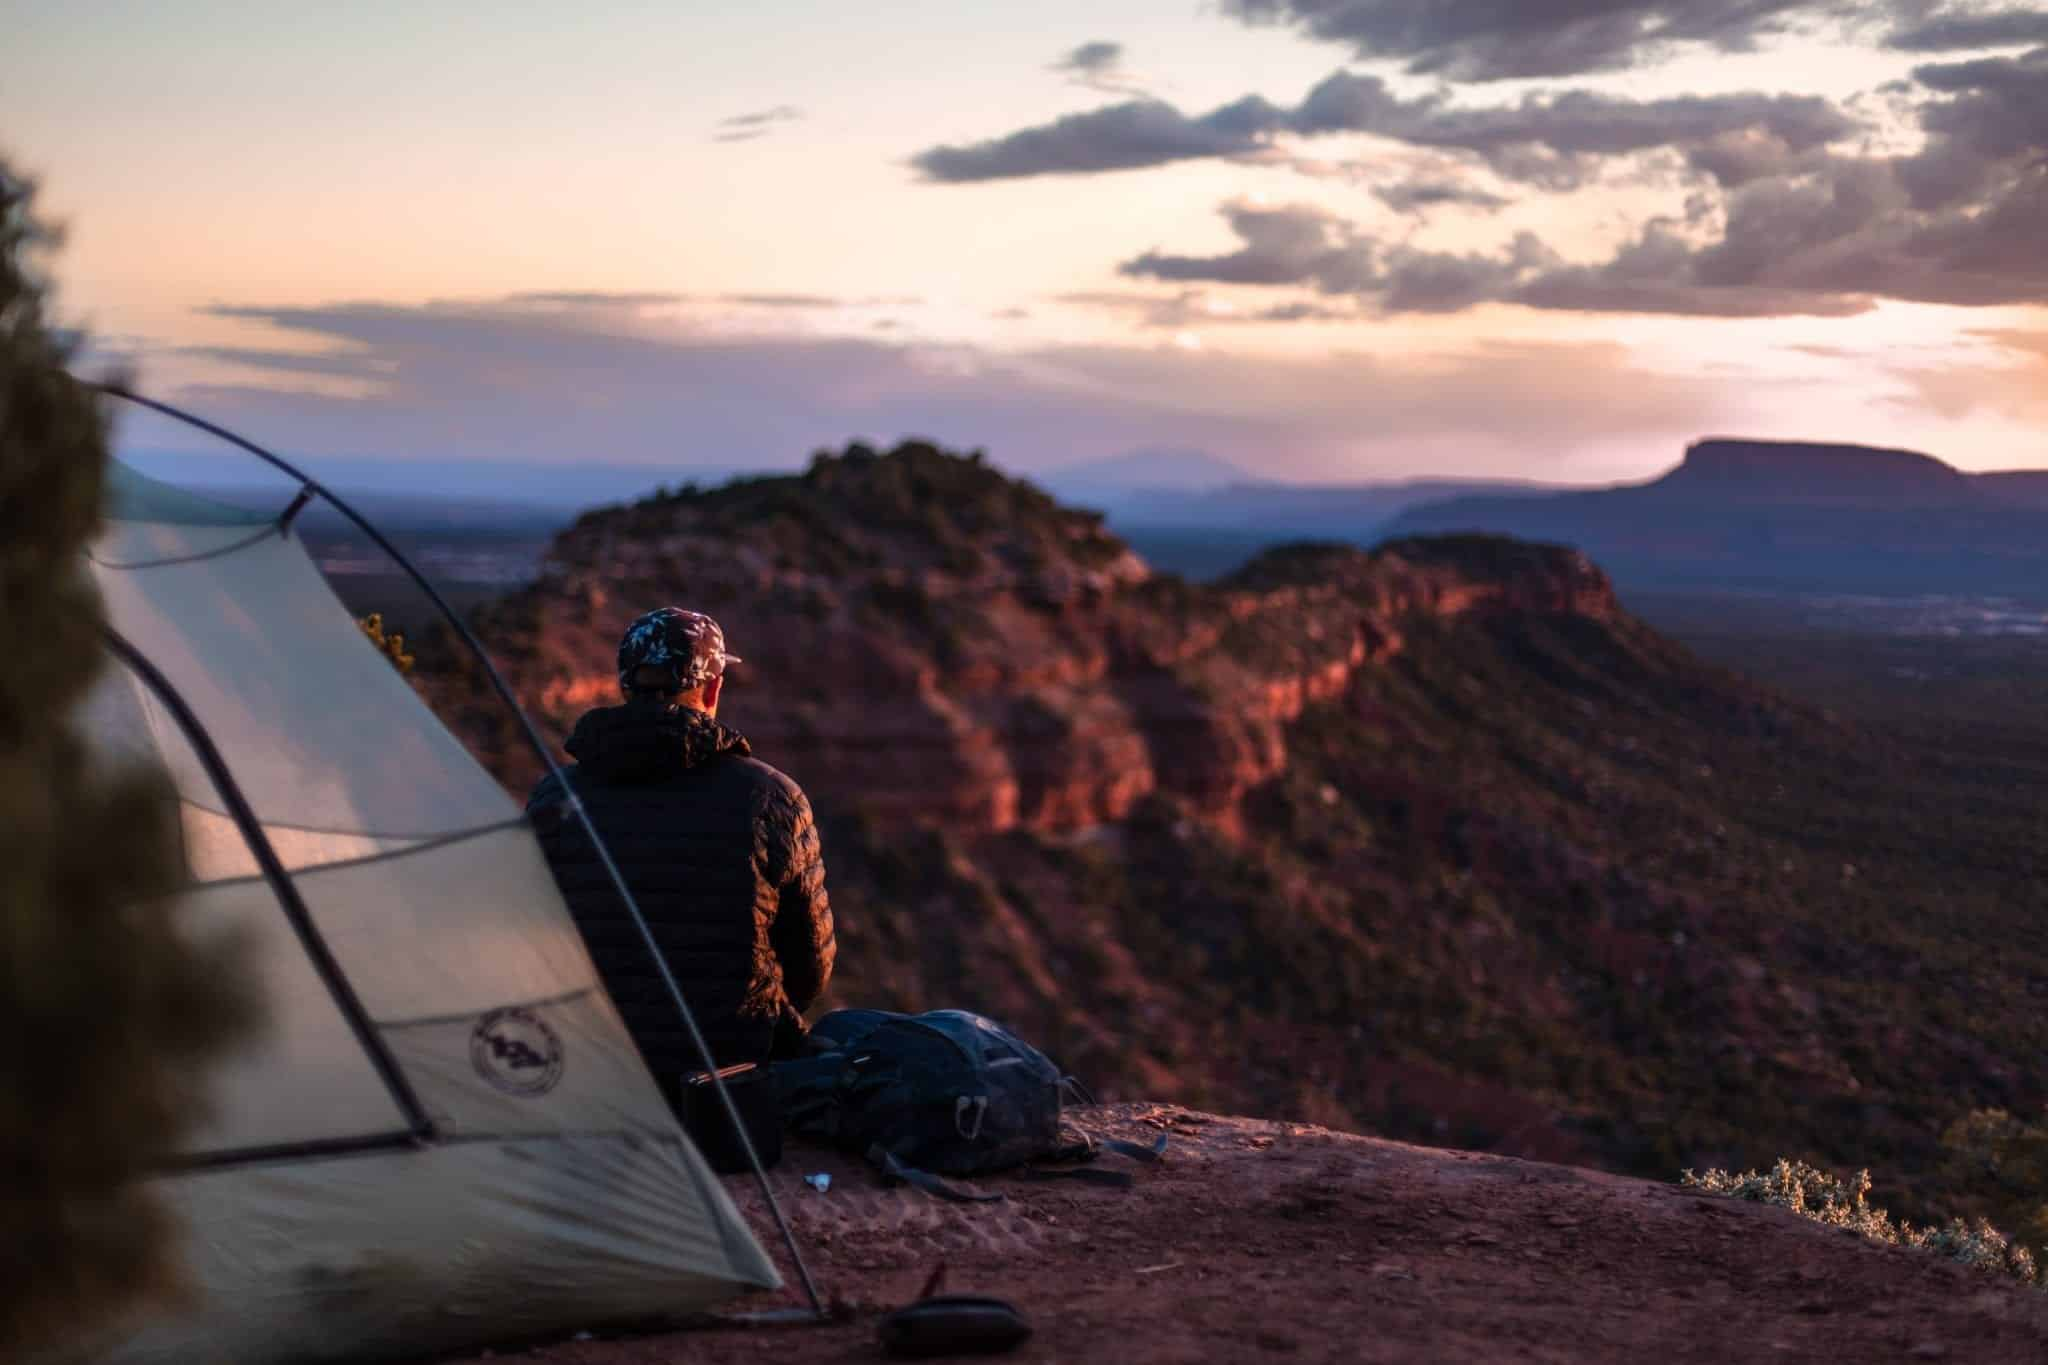 A man sitting in front of a tent looking at canyons in the distance.